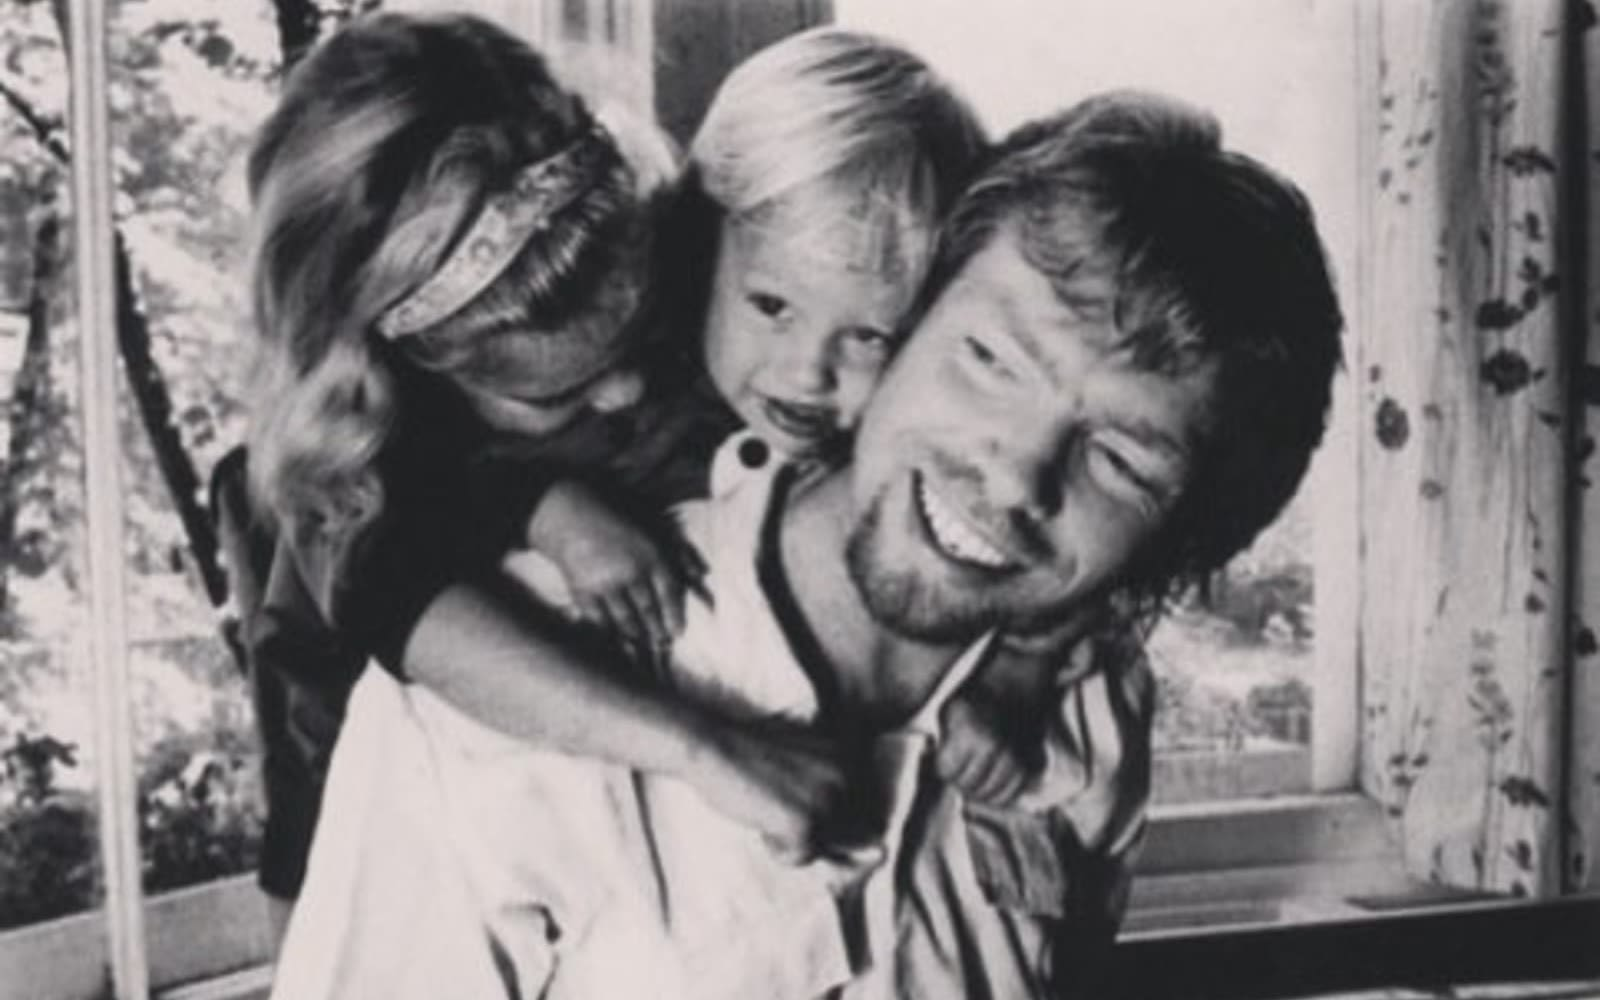 A young Richard Branson with Sam and Holly Branson as children on his back